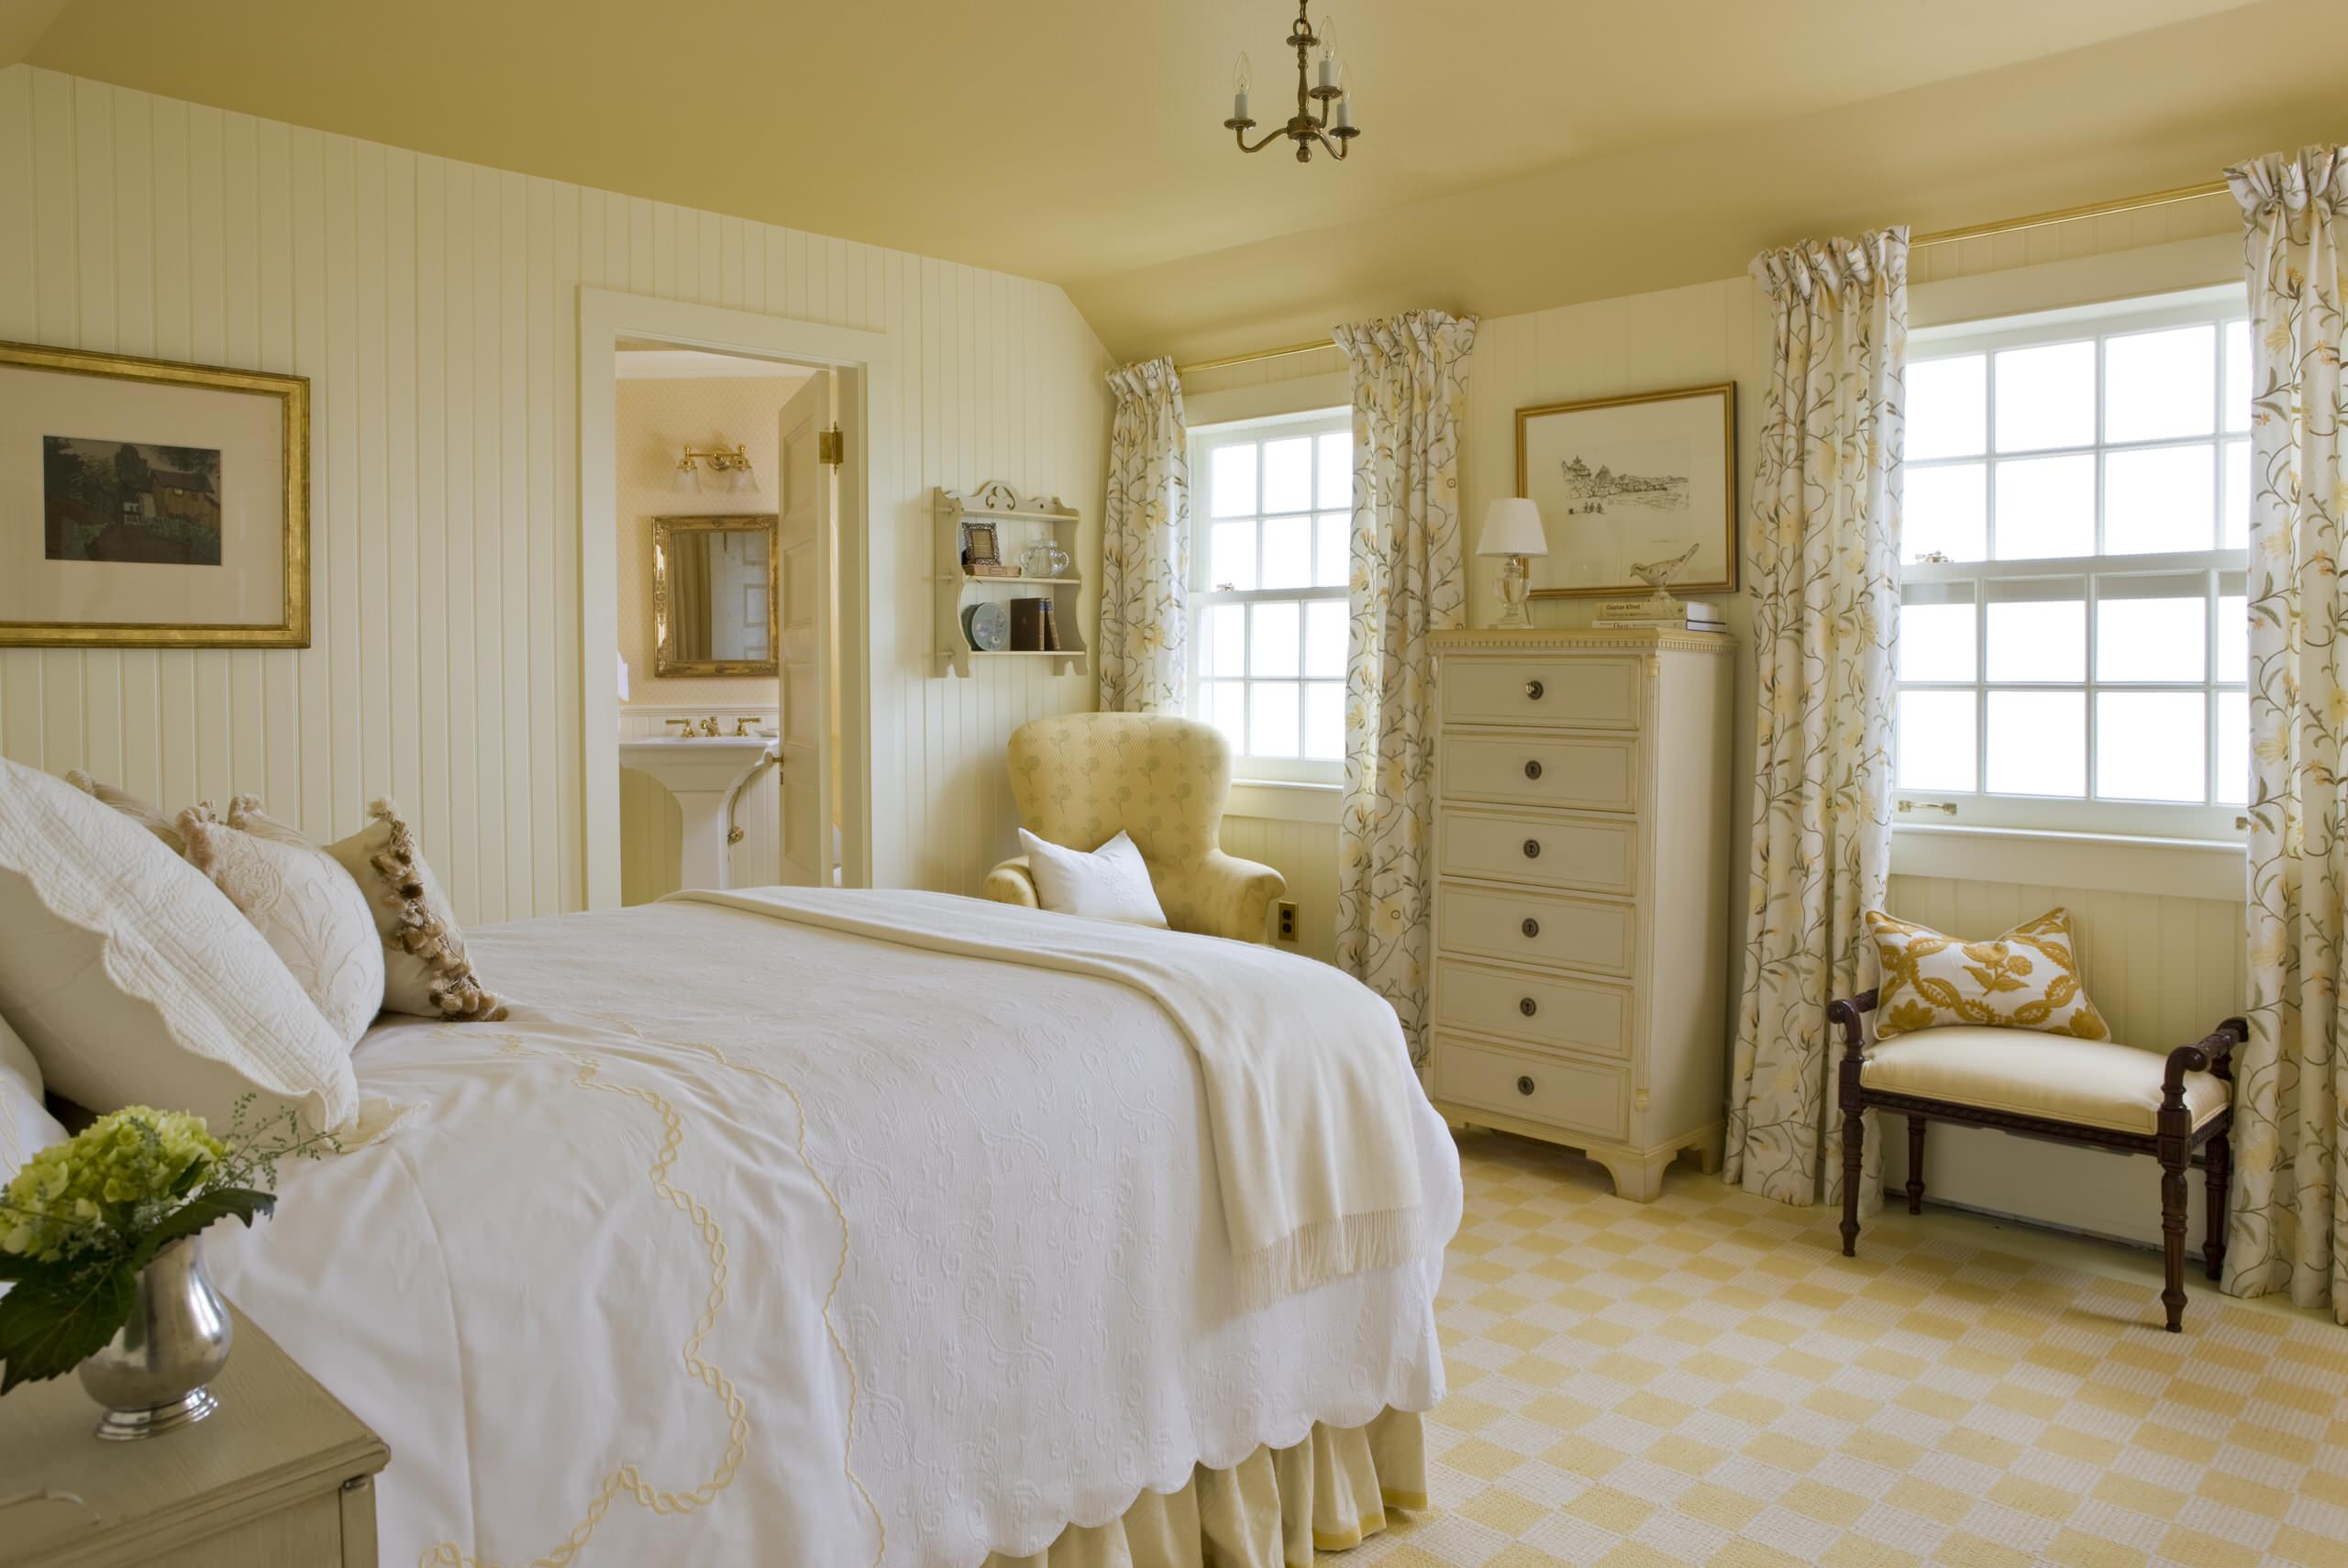 75 Beautiful Victorian Bedroom Pictures Ideas March 2021 Houzz